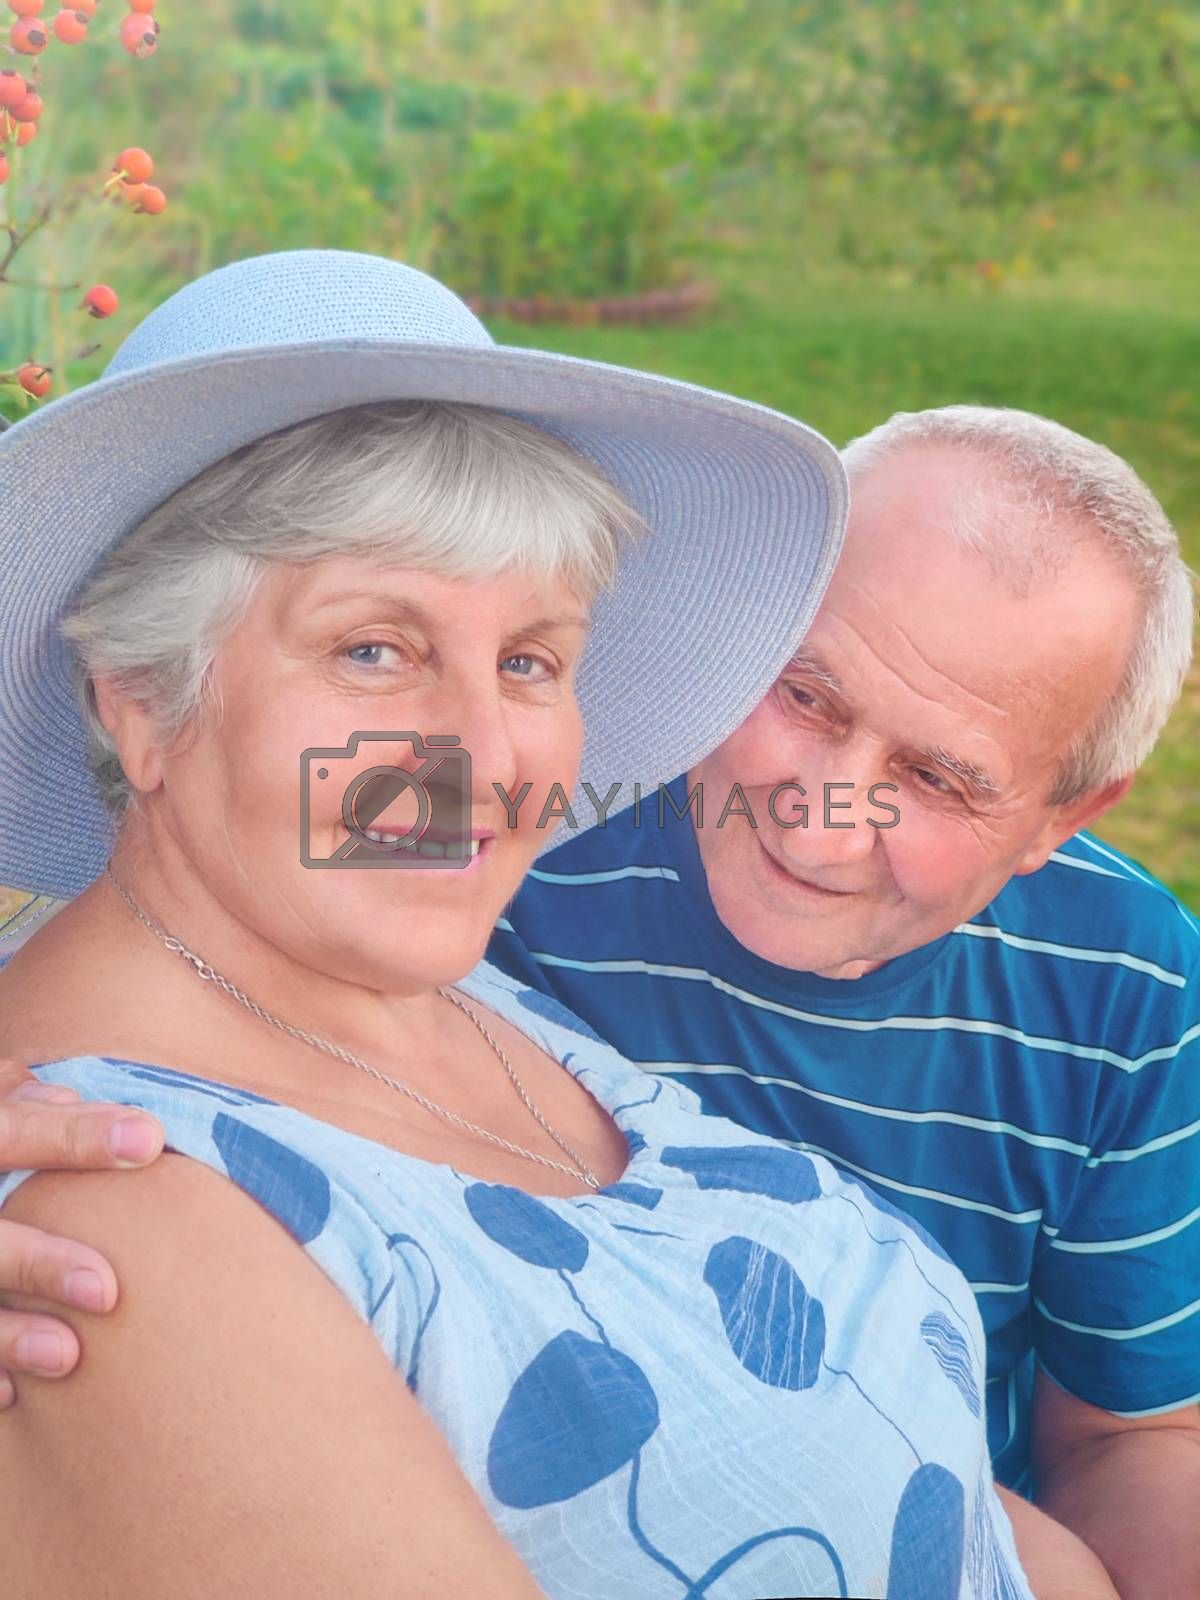 Authentic outdoor shot of aging couple having fun in the garden and blessed with love. During their game man is trying to kiss his partner and she is laughing out loud. Love and family